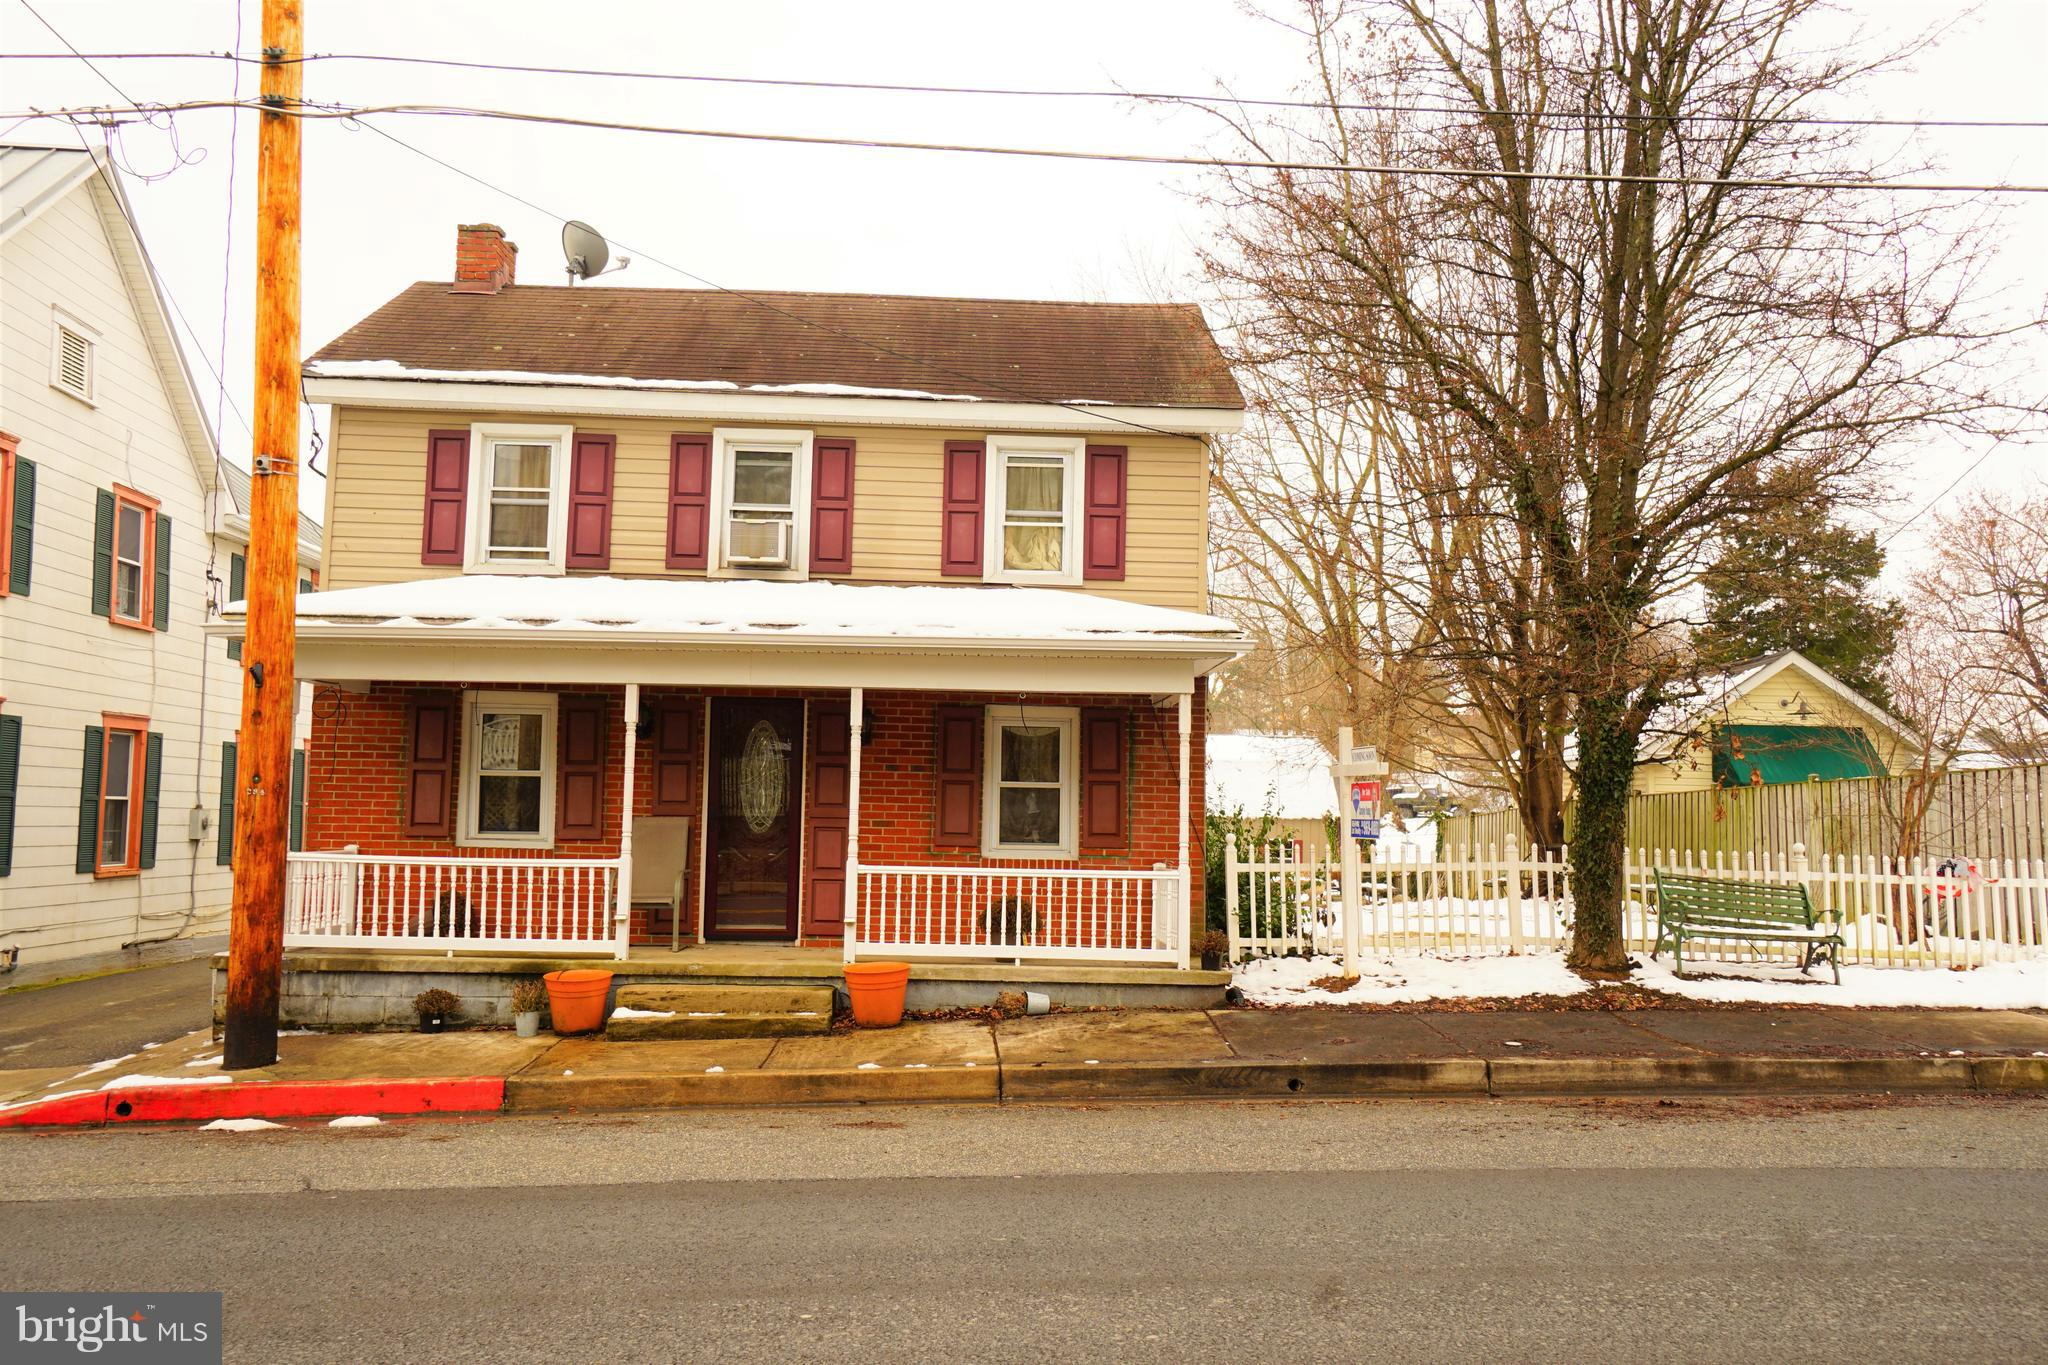 222 W MAIN STREET, SHARPSBURG, MD 21782